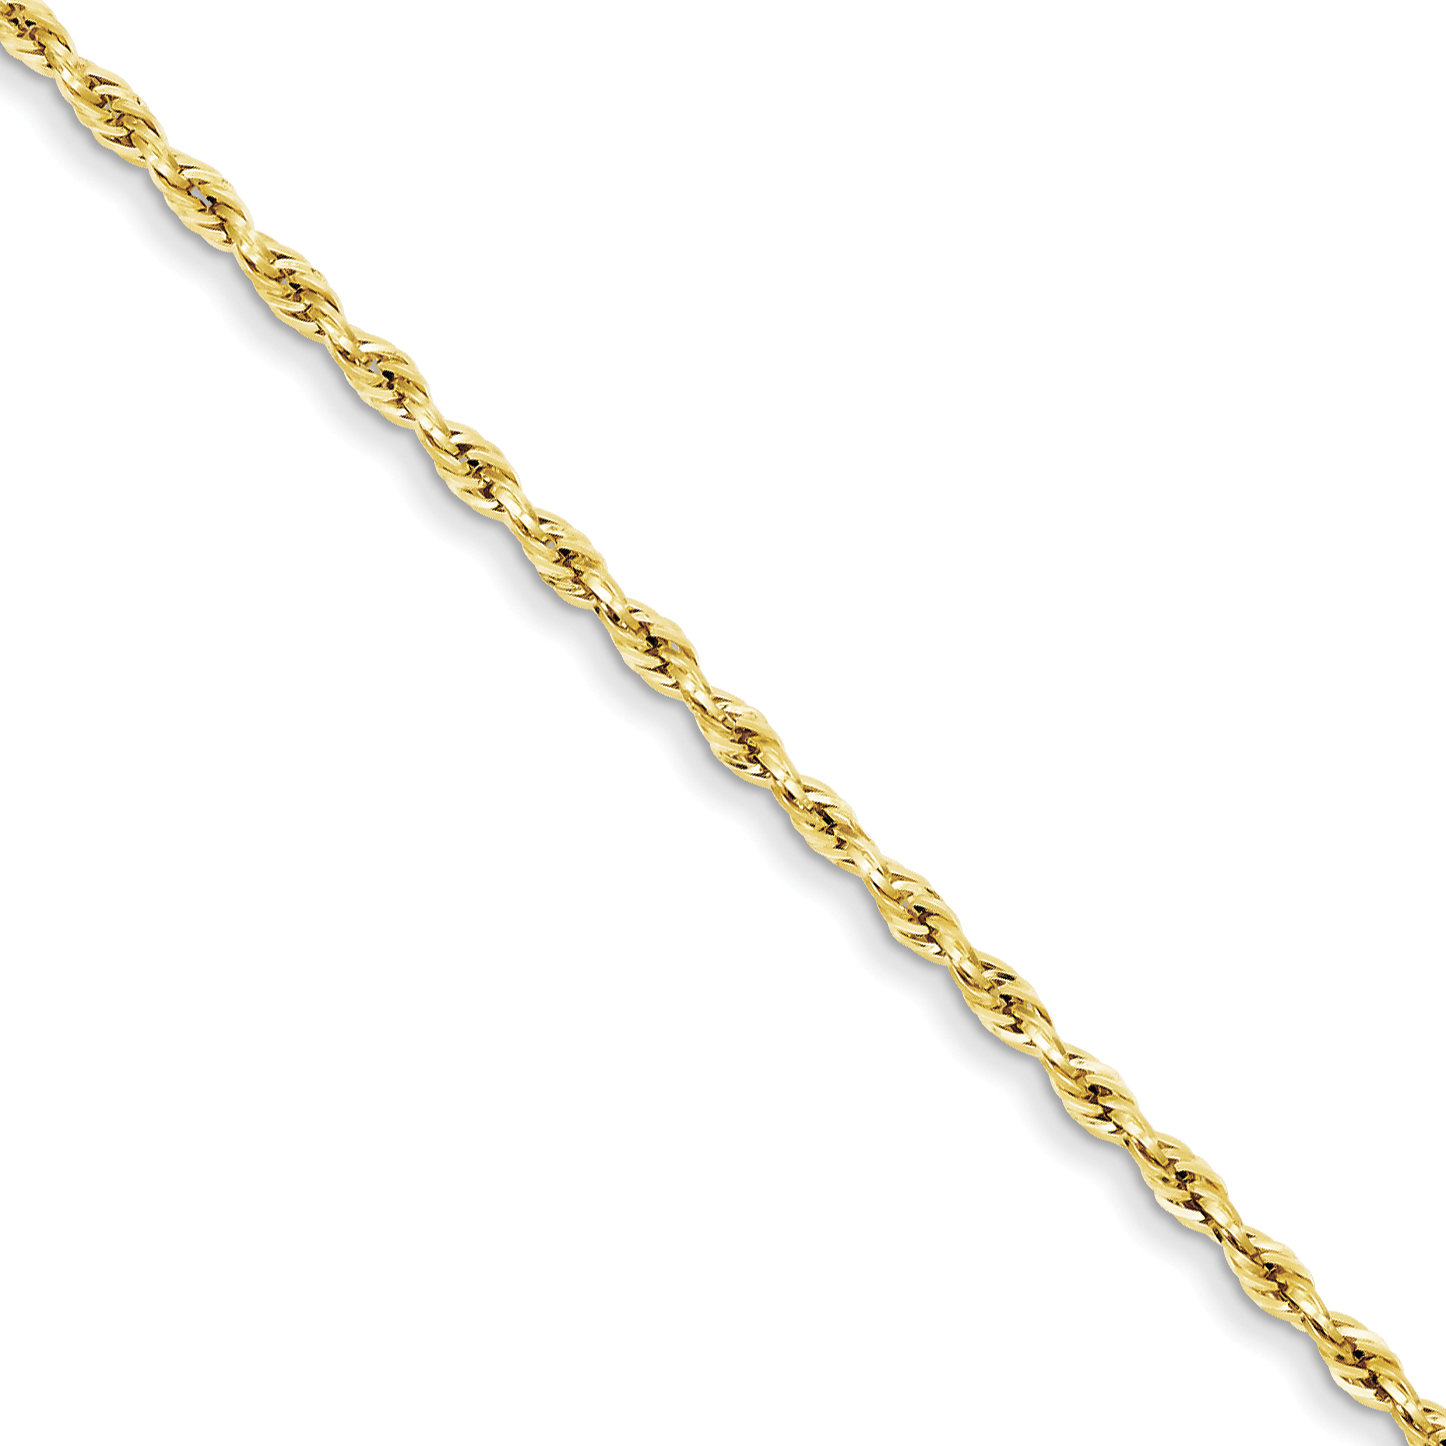 "14ky 2.8mm Hollow Rope Chain 7 Inch ""Bracelets - image 4 de 4"